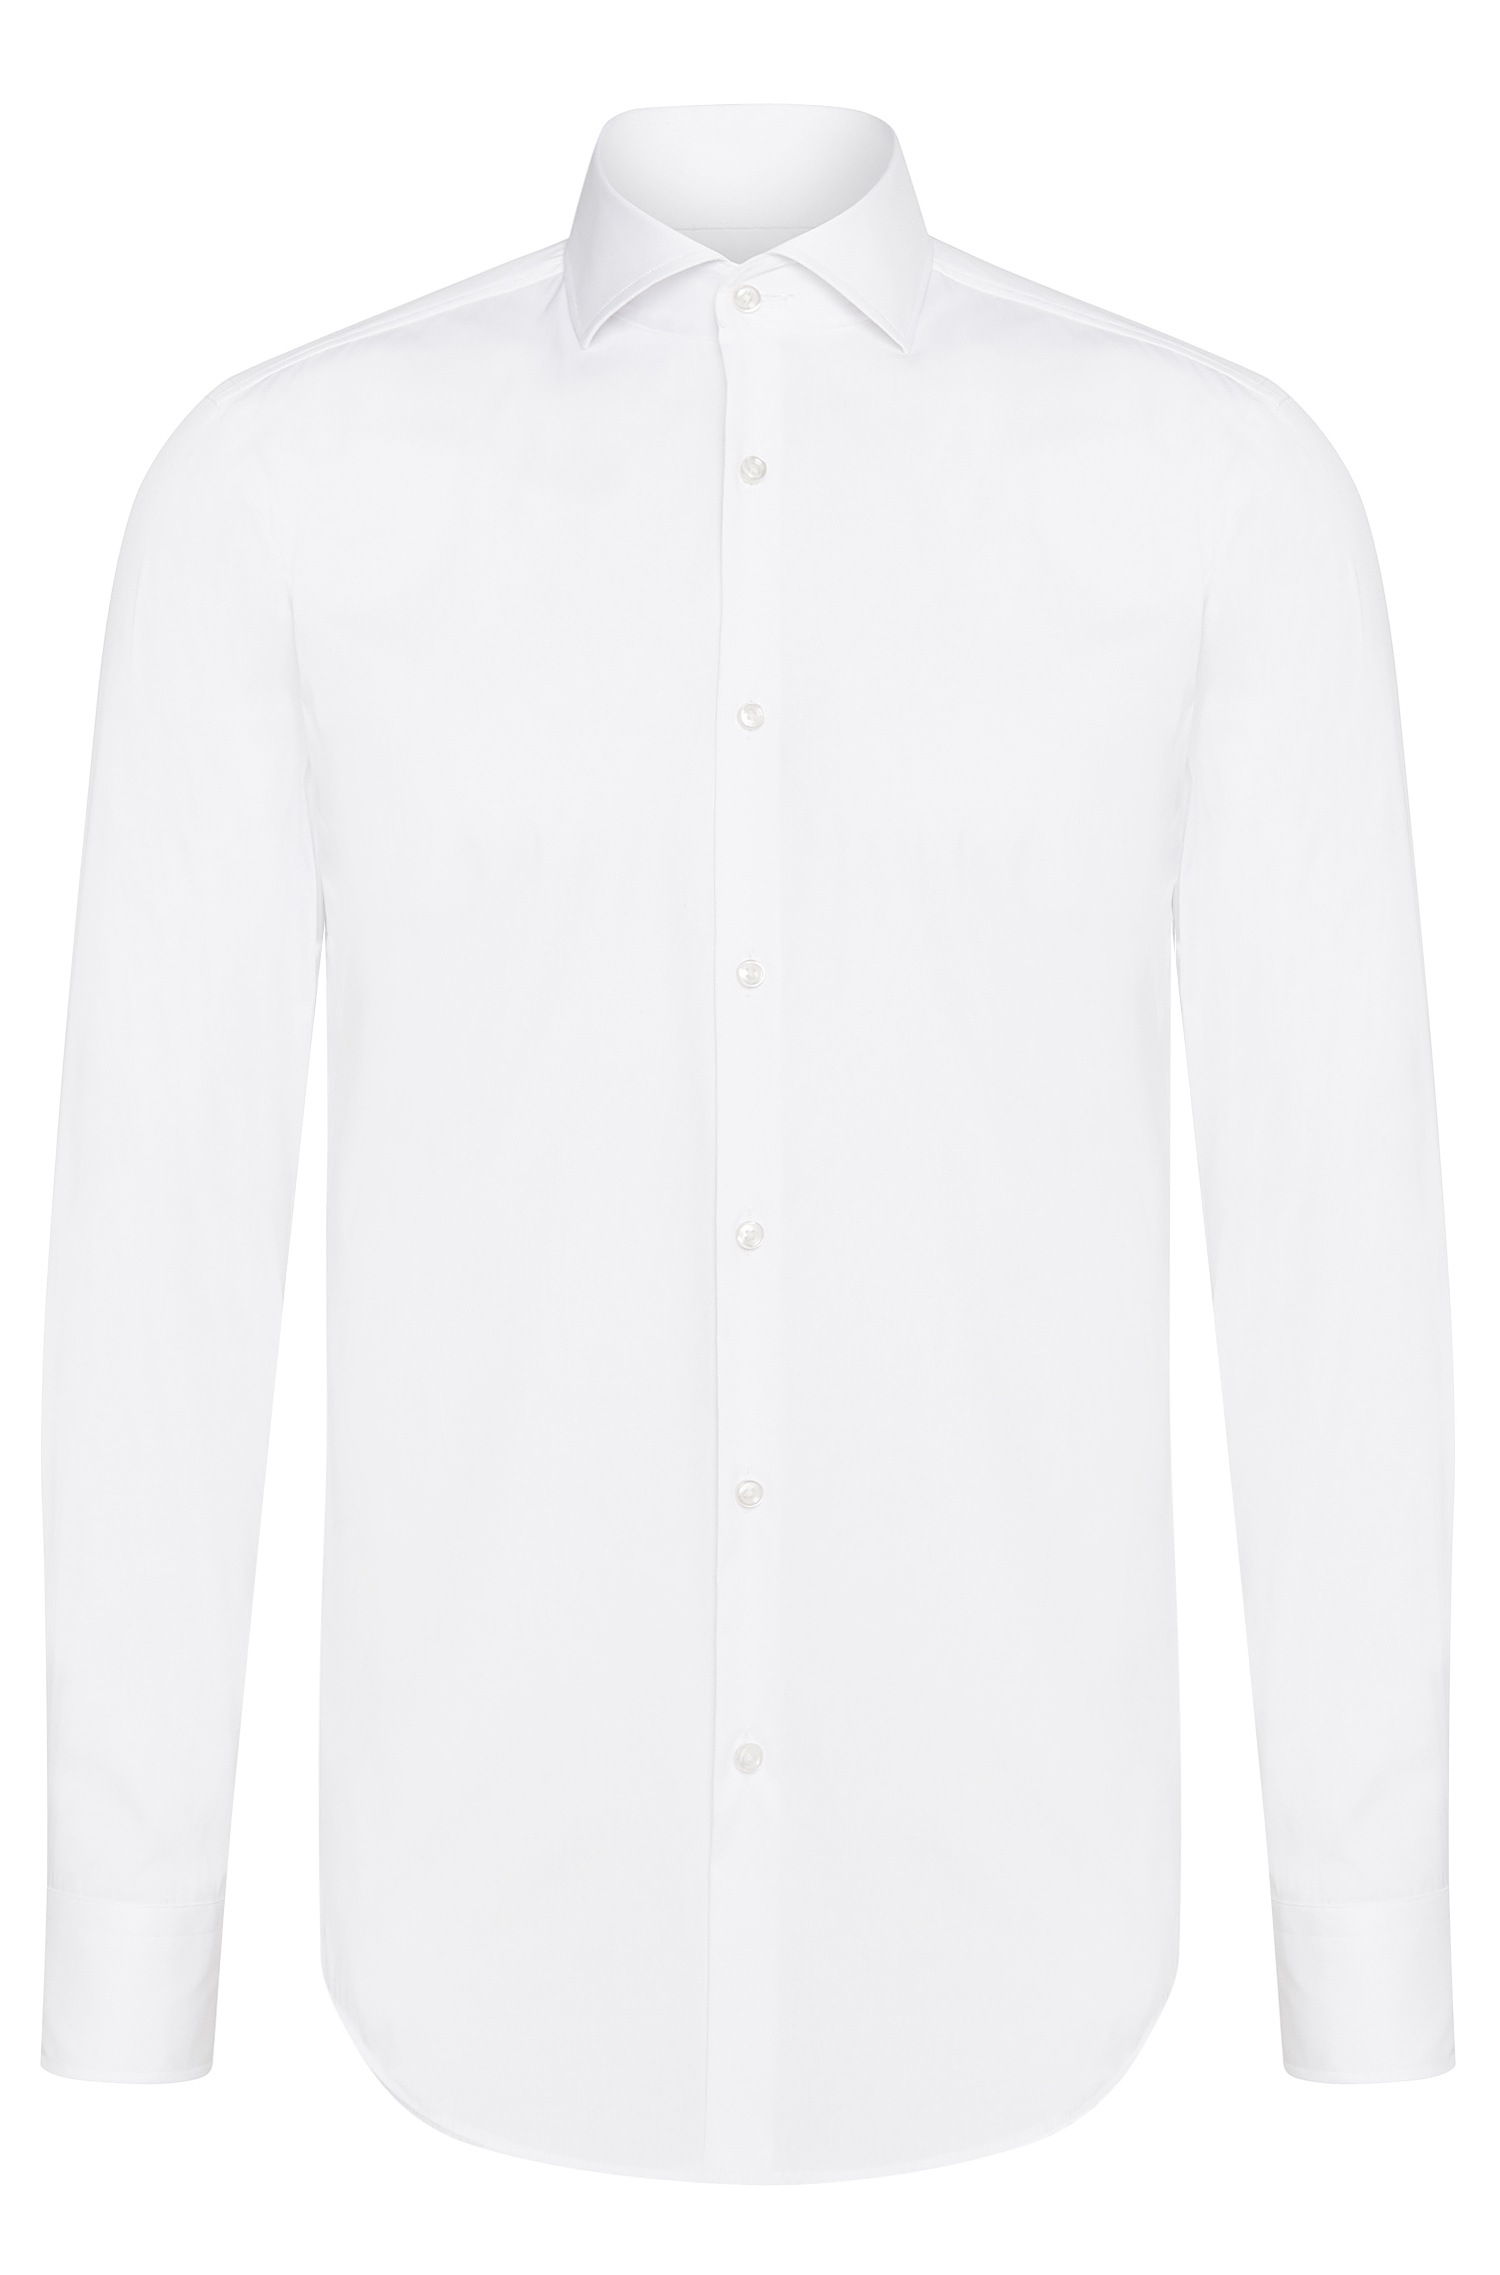 Hugo Boss Jason Chemise Slim Fit en popeline stretchn